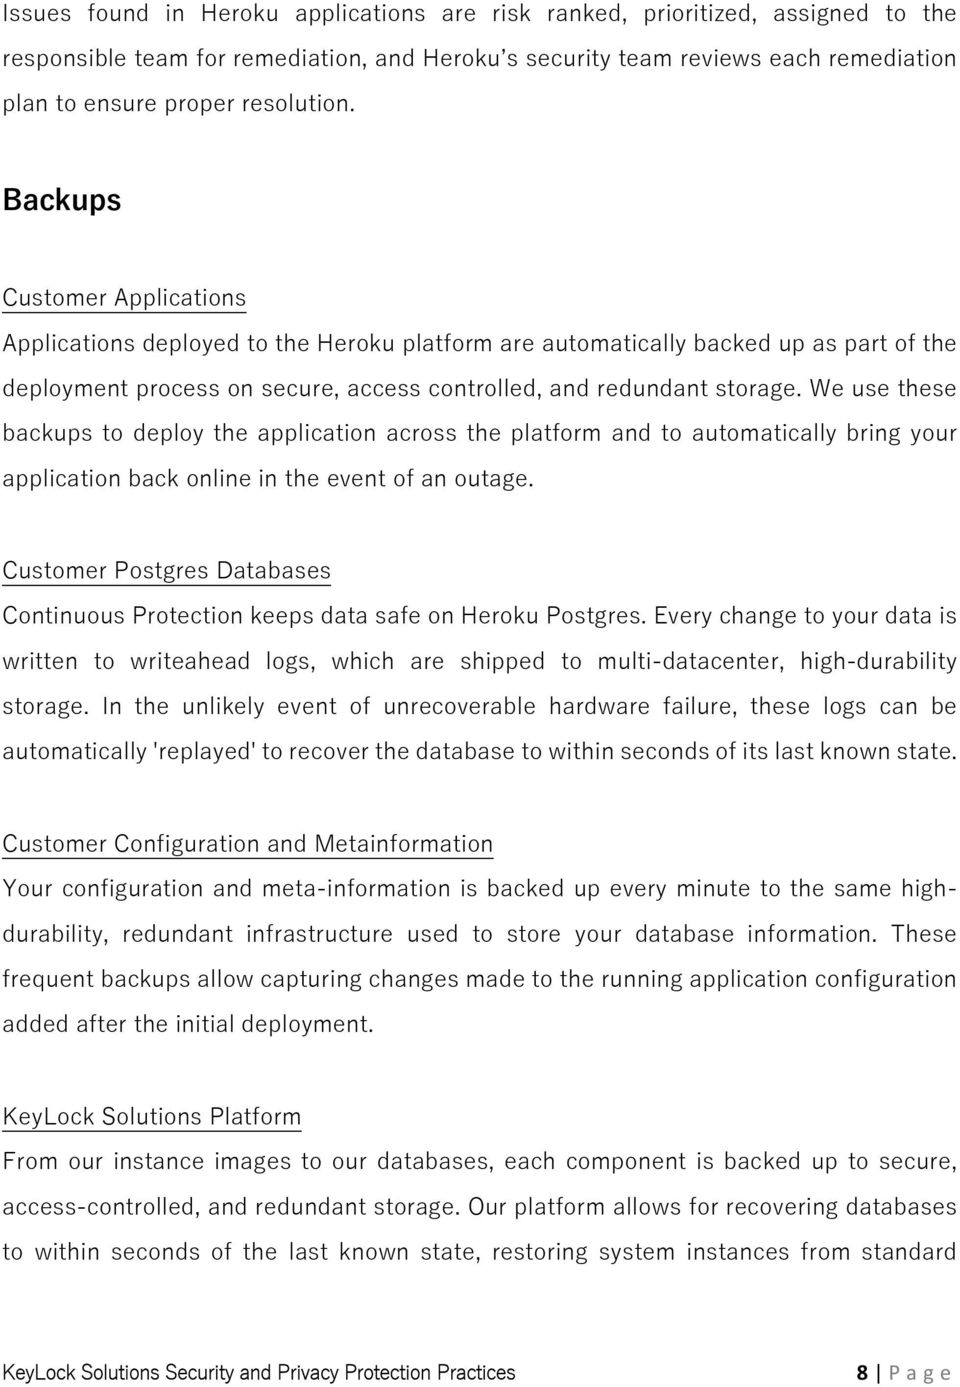 Backups Customer Applications Applications deployed to the Heroku platform are automatically backed up as part of the deployment process on secure, access controlled, and redundant storage.